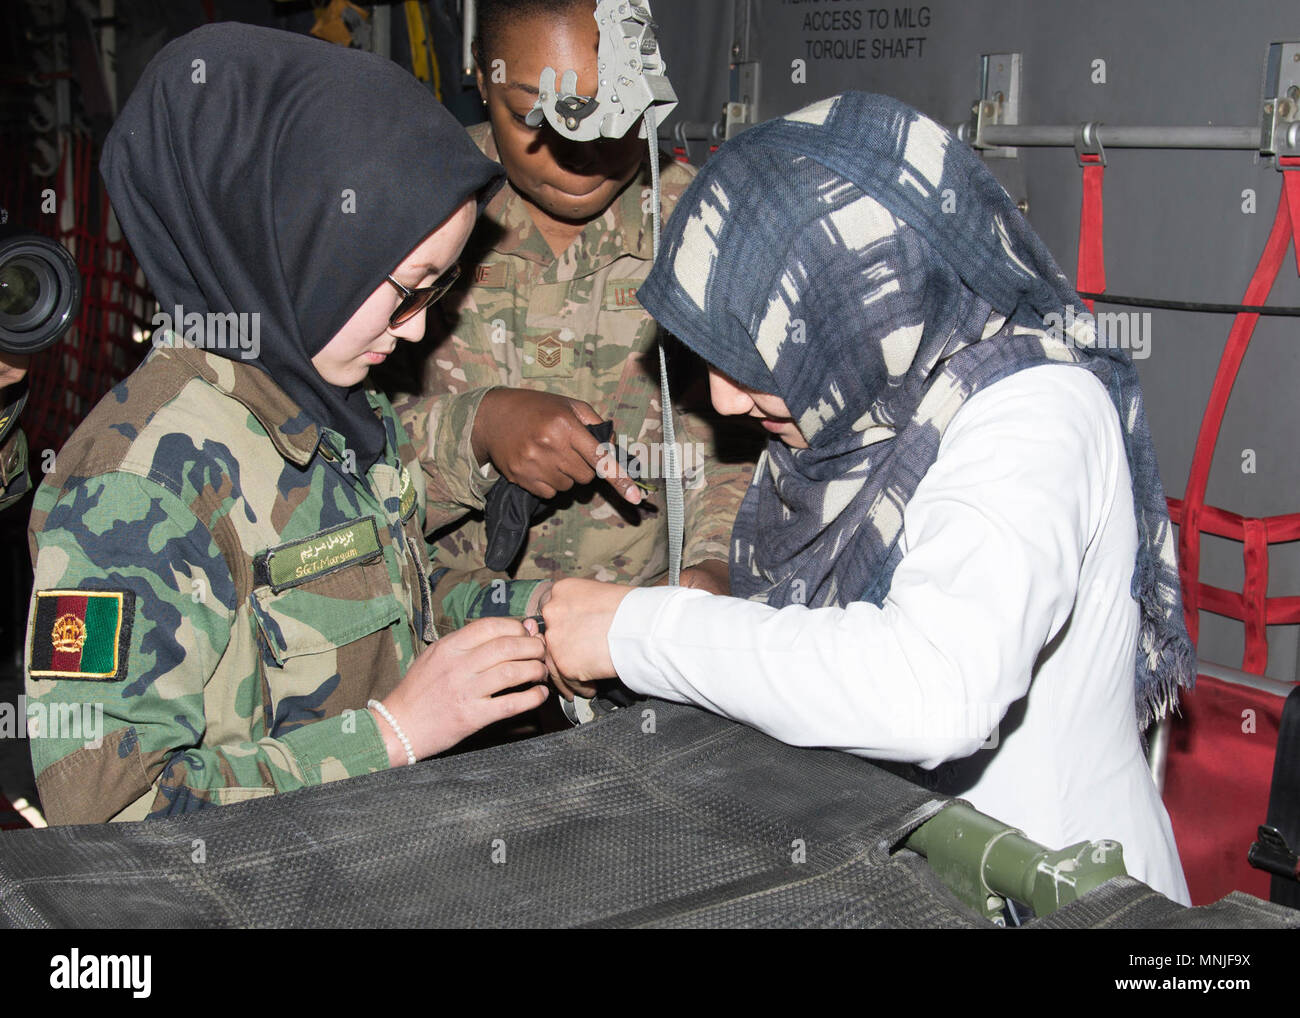 Master Sgt. Ruth Celestine, Train, Advise, Assist Command-Air medical advisor, talks to Afghan Air Force medics informing them about how to lock a patient littler in place during a C-130 casualty evacuation orientation March 3, 2018, Kabul Air Wing, Afghanistan. Over all 24 medics participated in the training, some of which had never done training like this before. - Stock Image